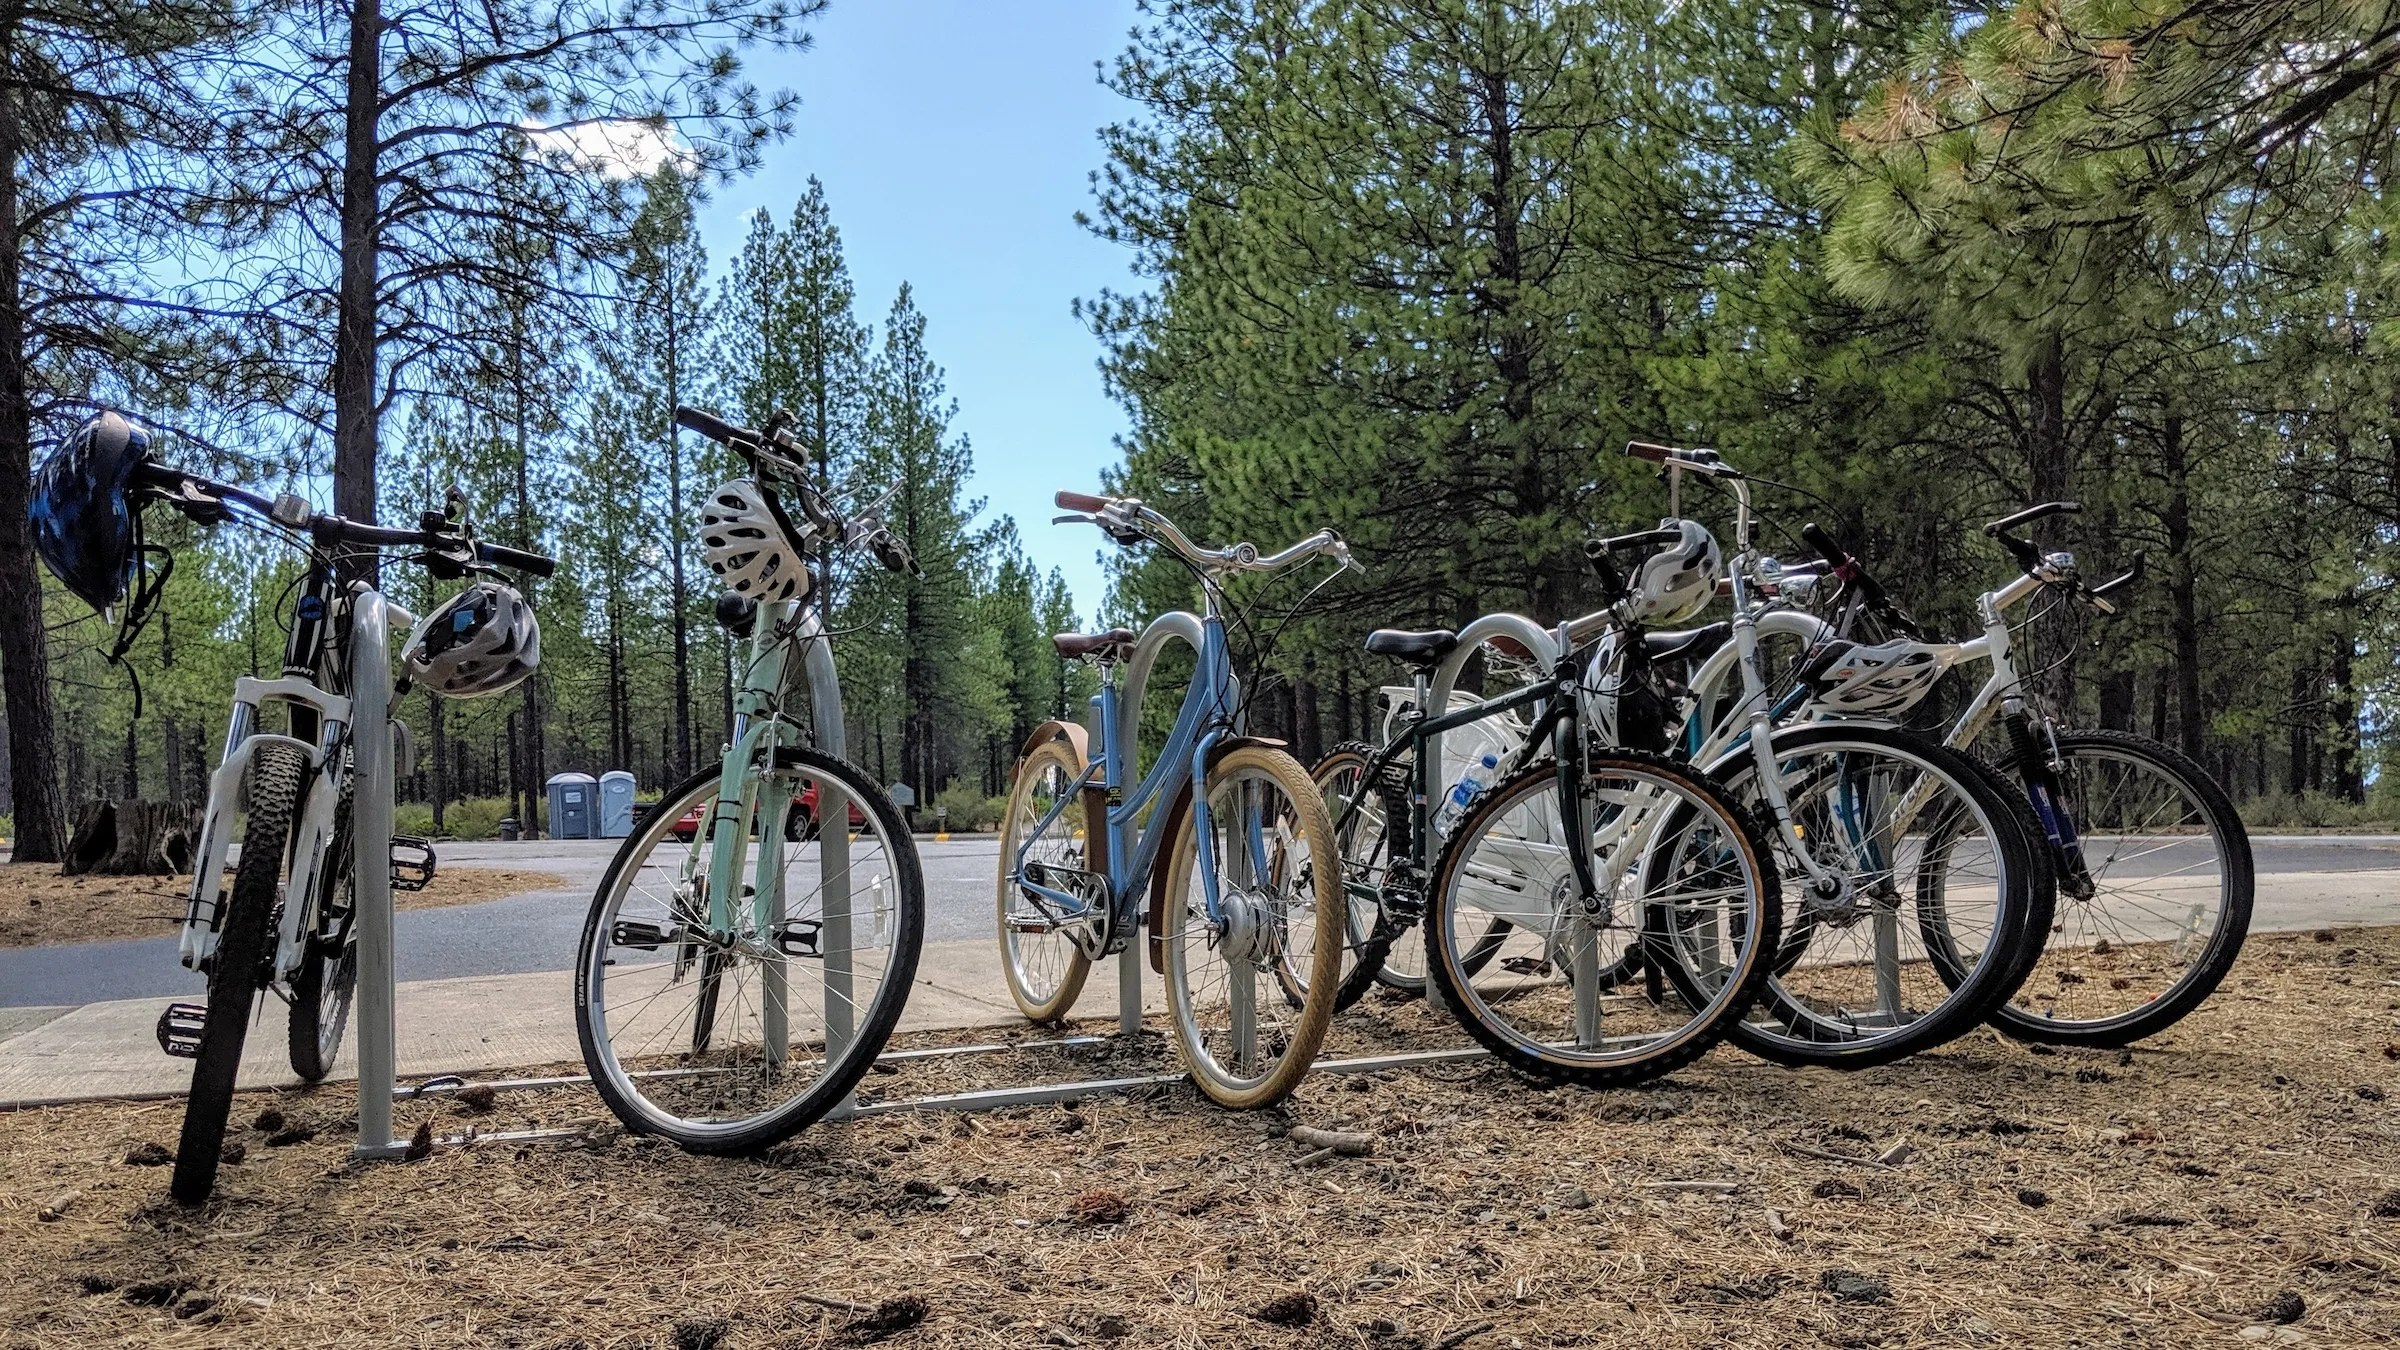 All our bikes at Lava Lands